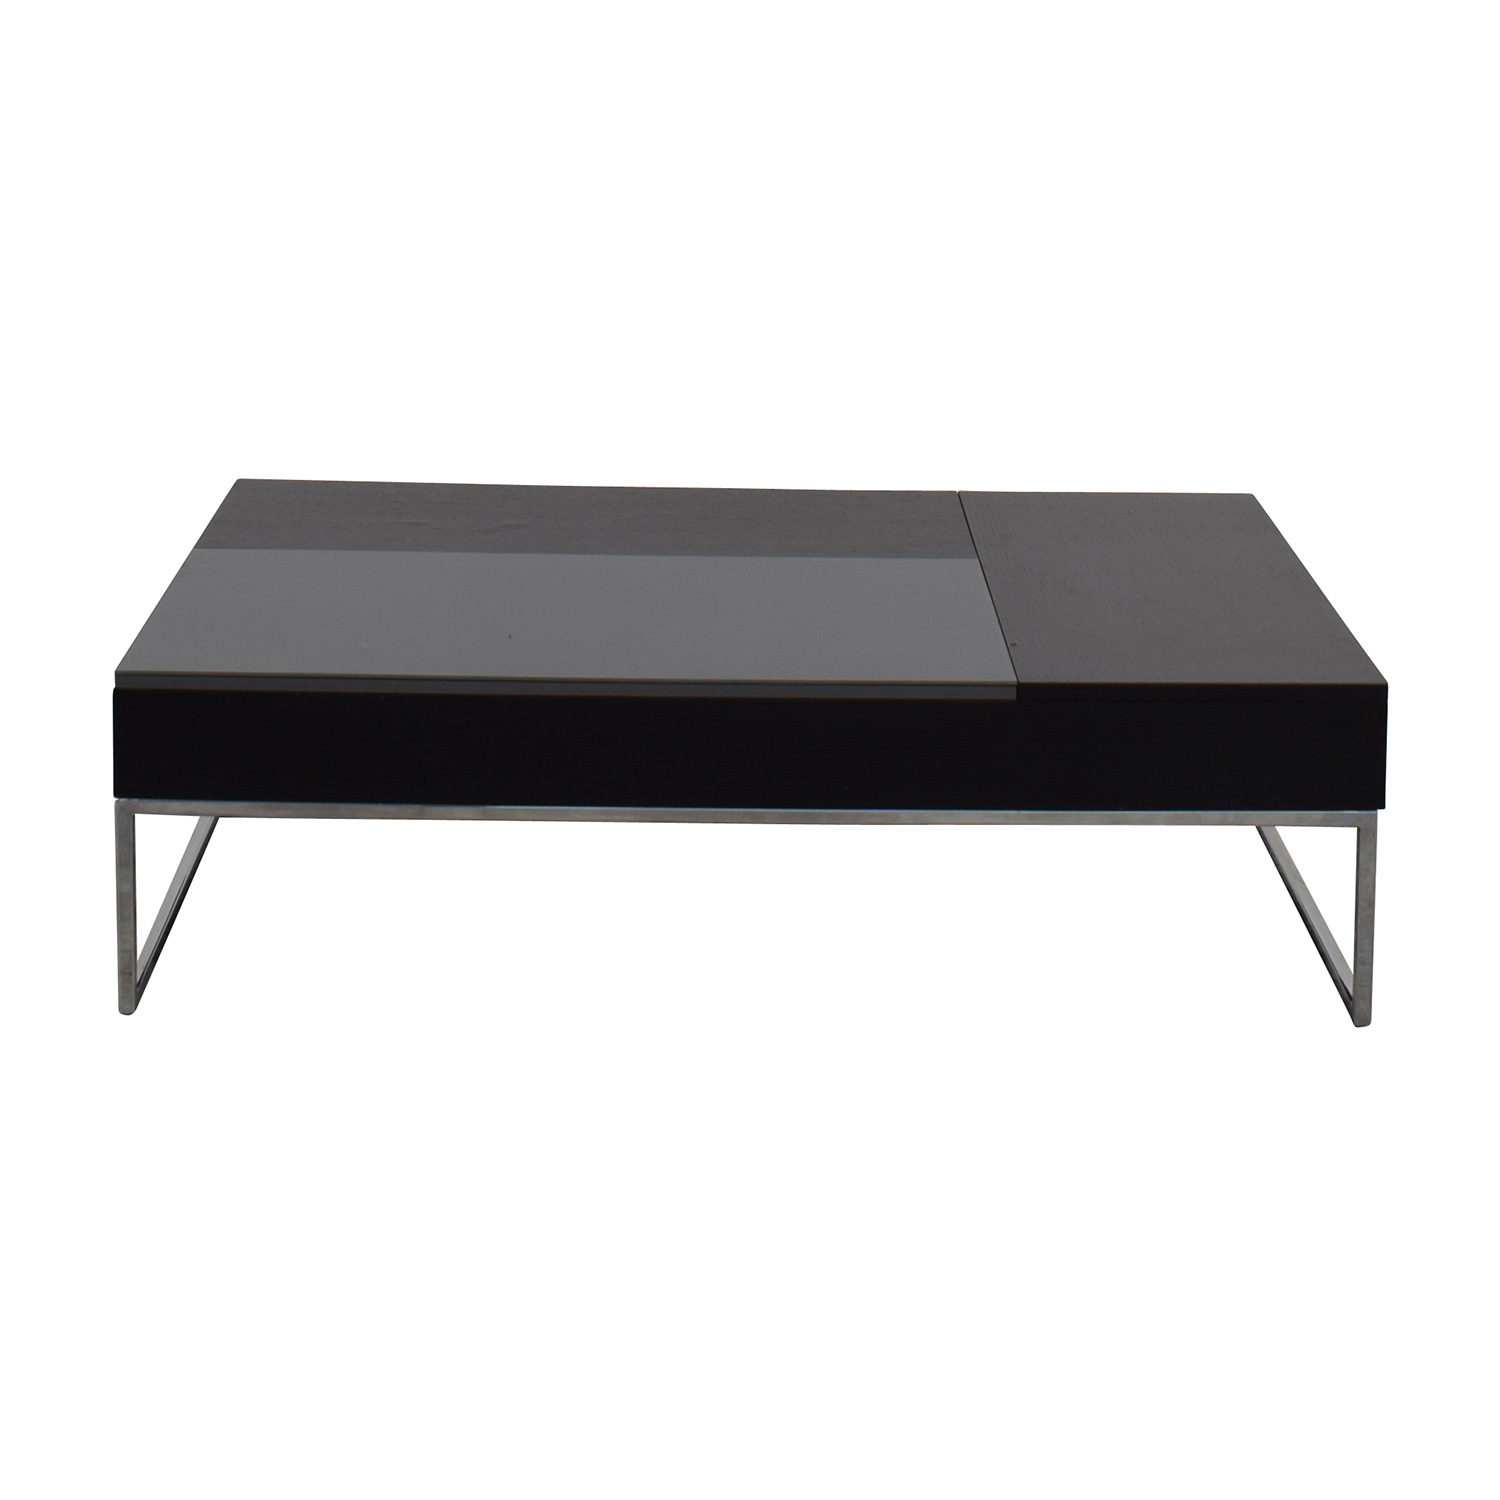 Bo concept coffee table coffee table boconcept cambridge for Bo concept